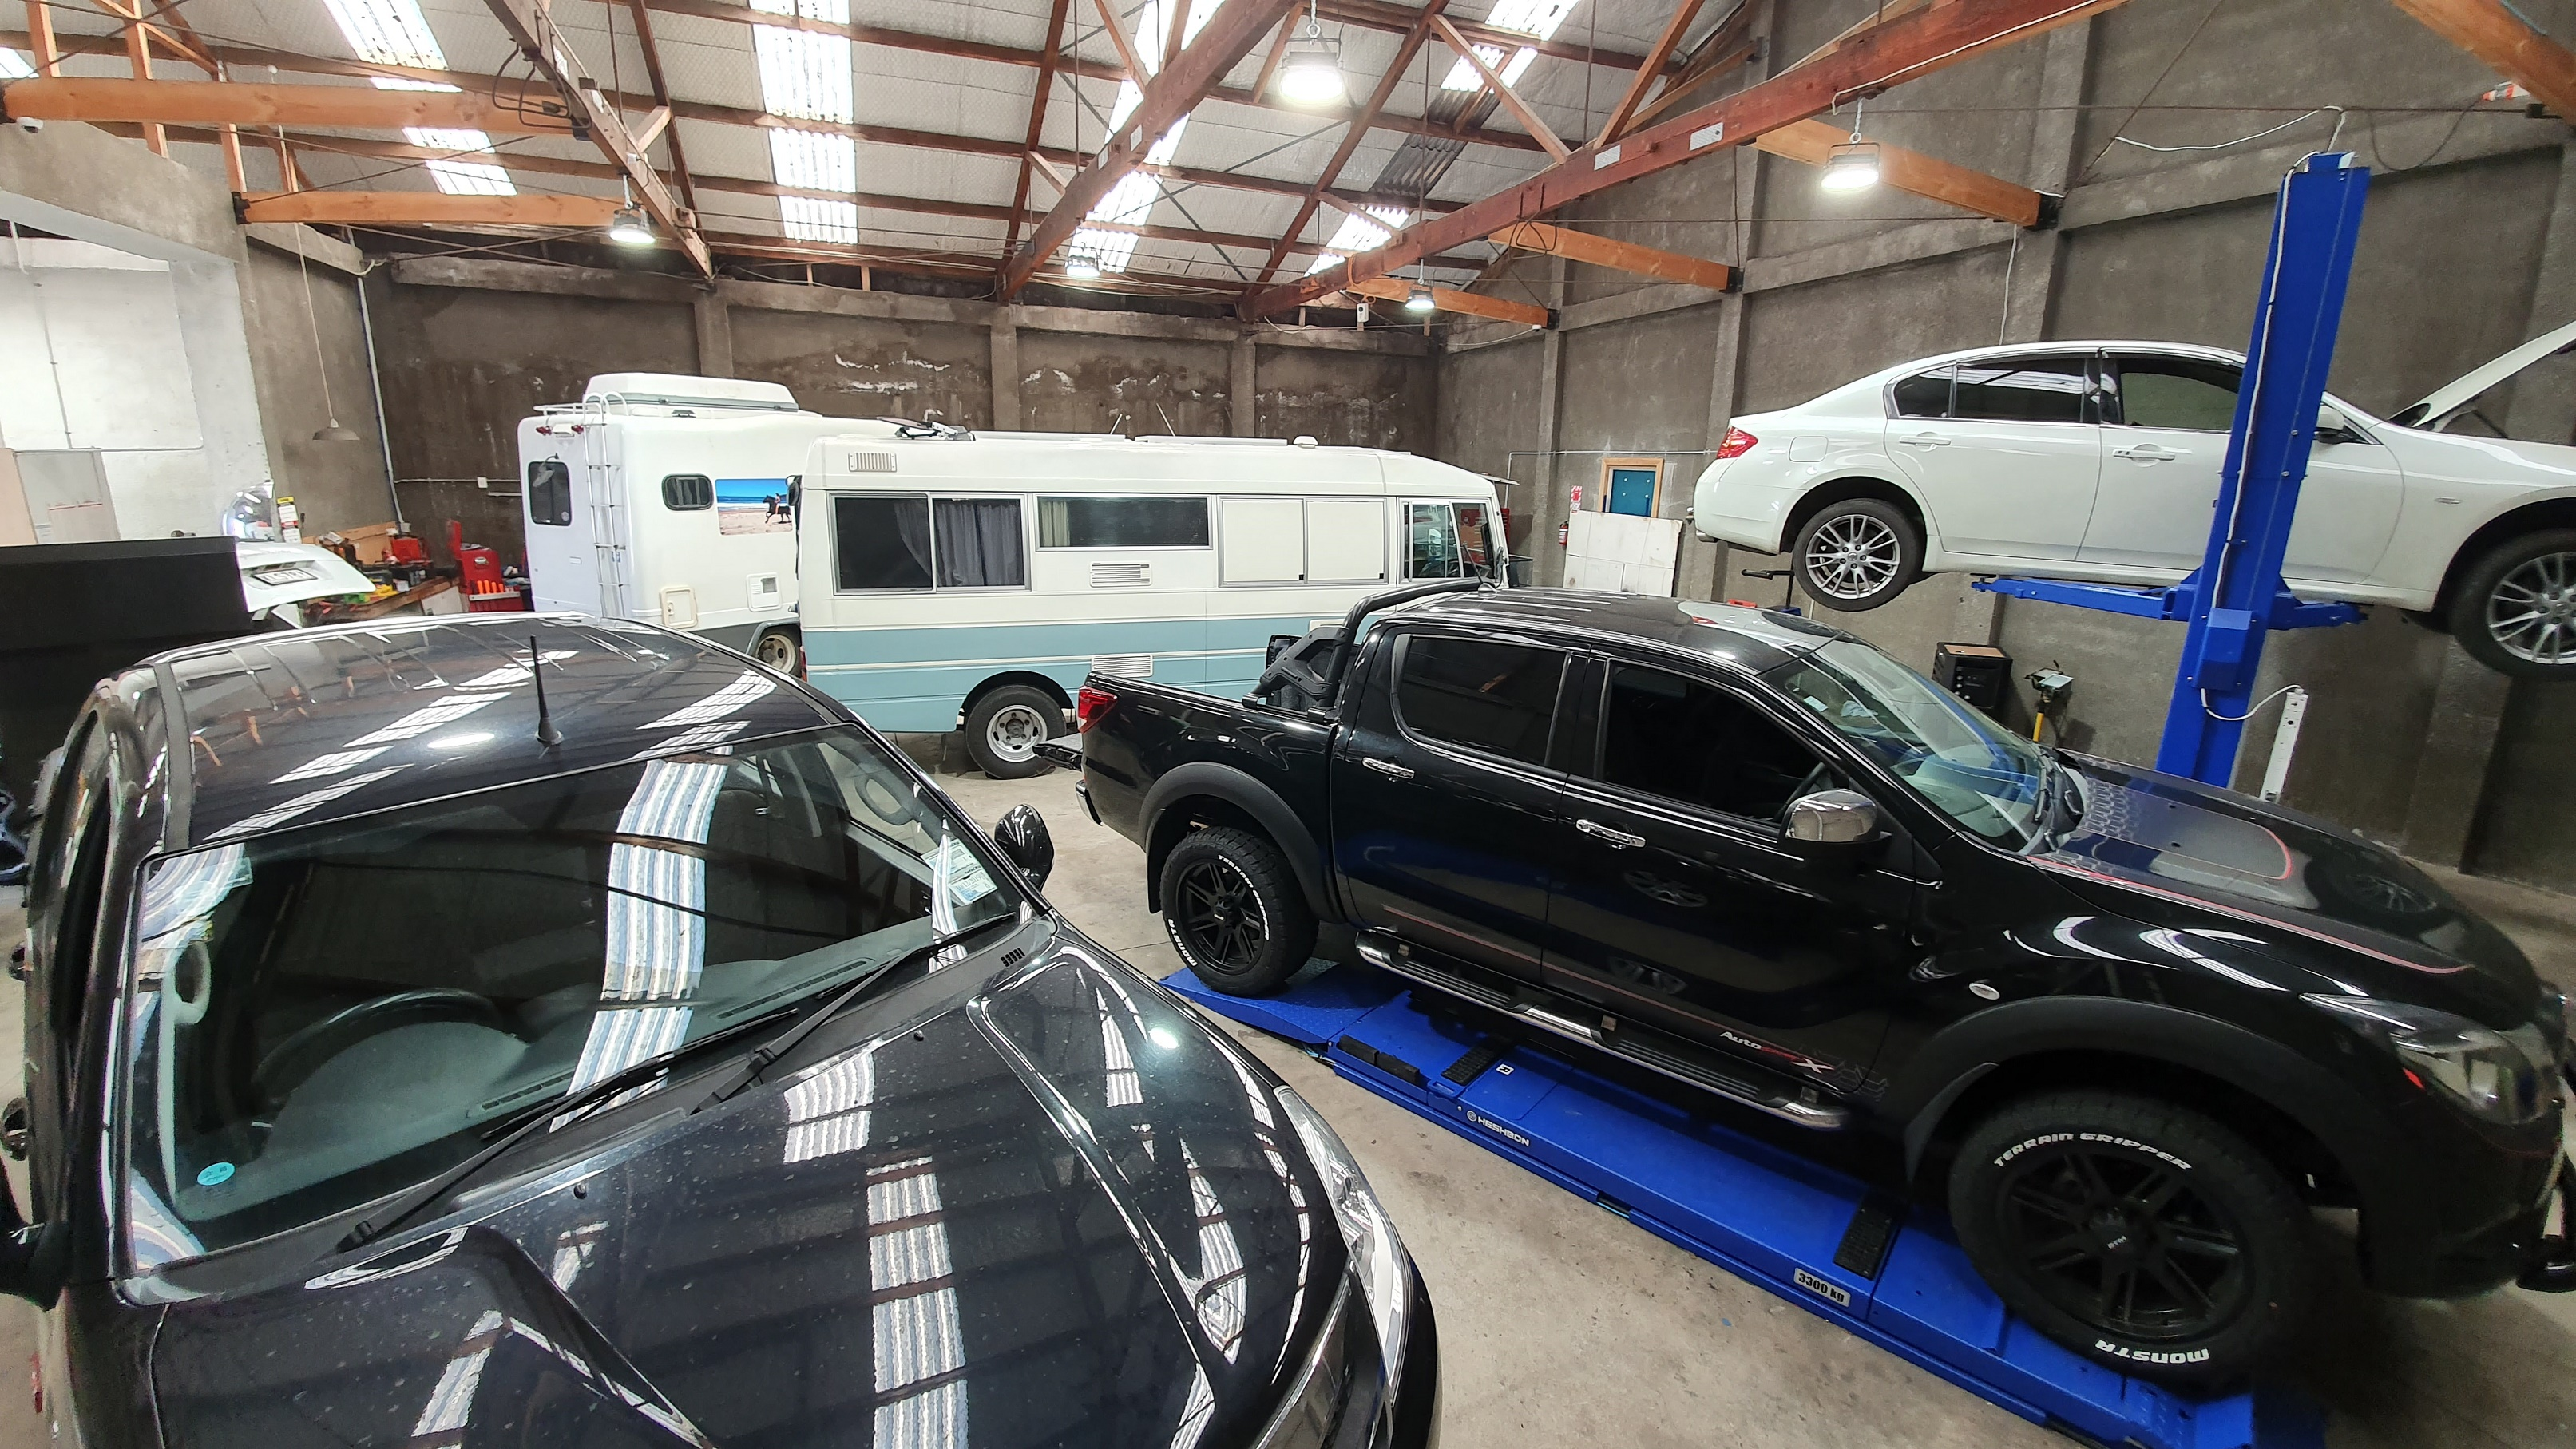 Auto Electricians New Plymouth Taranaki. Auto City Auto Electrical